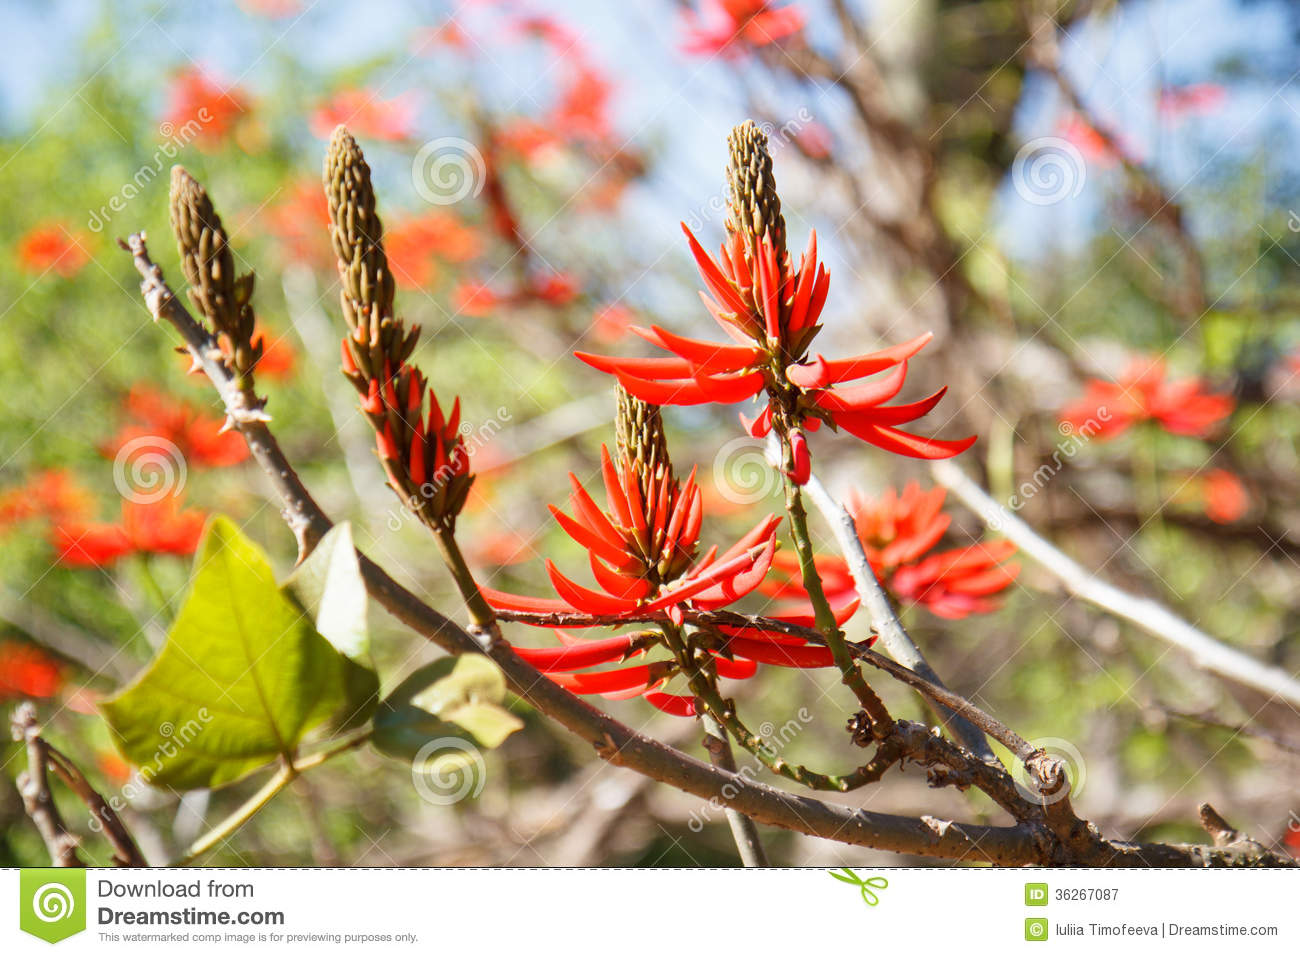 Tree with red flowers erythrina coral tree stock image for Tree with red flowers